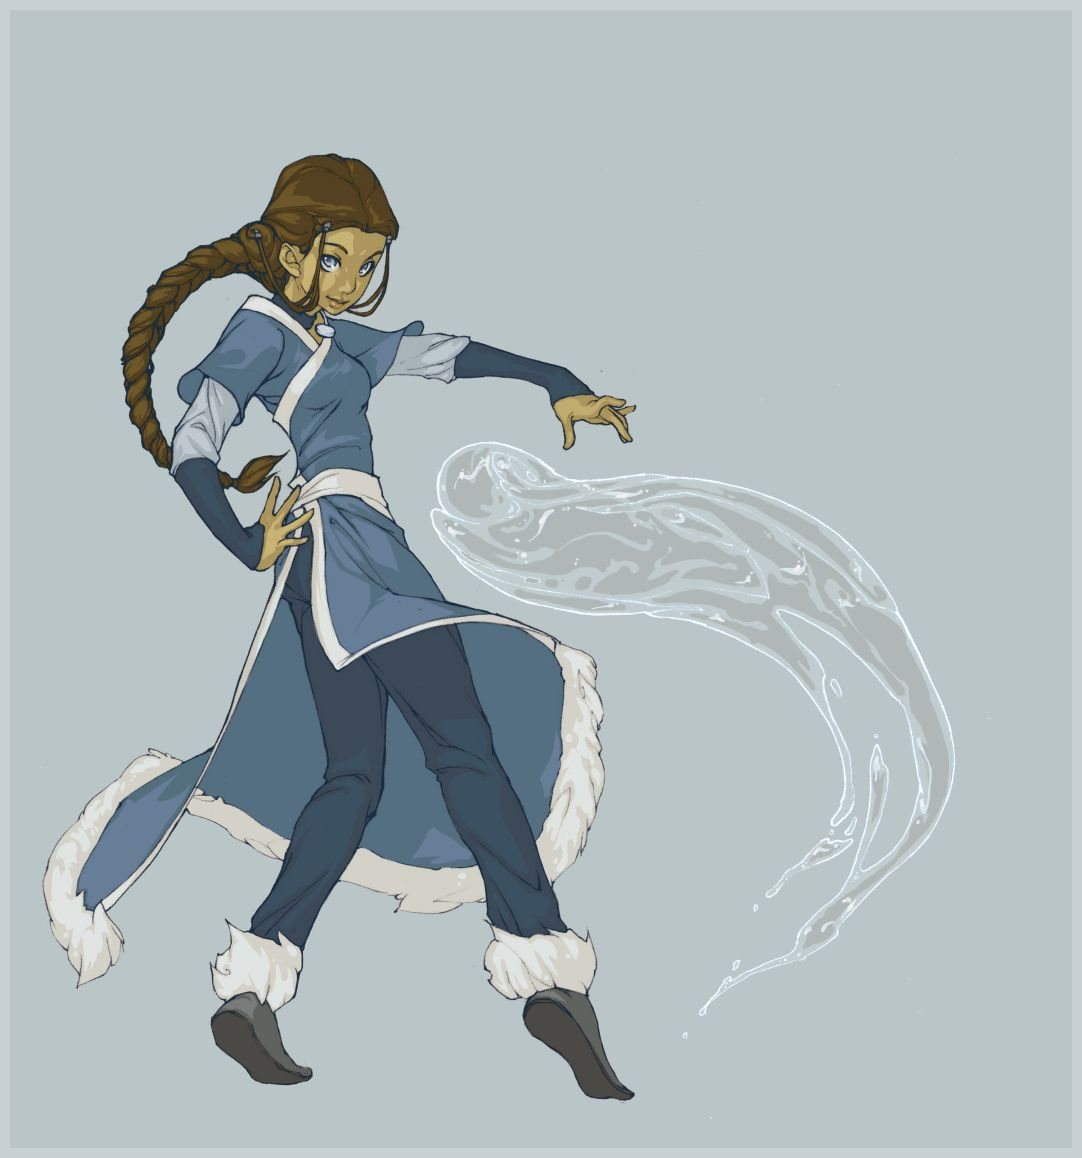 The Last Airbender All Avatars: ATLA - Katara: Avatar Last Airbender